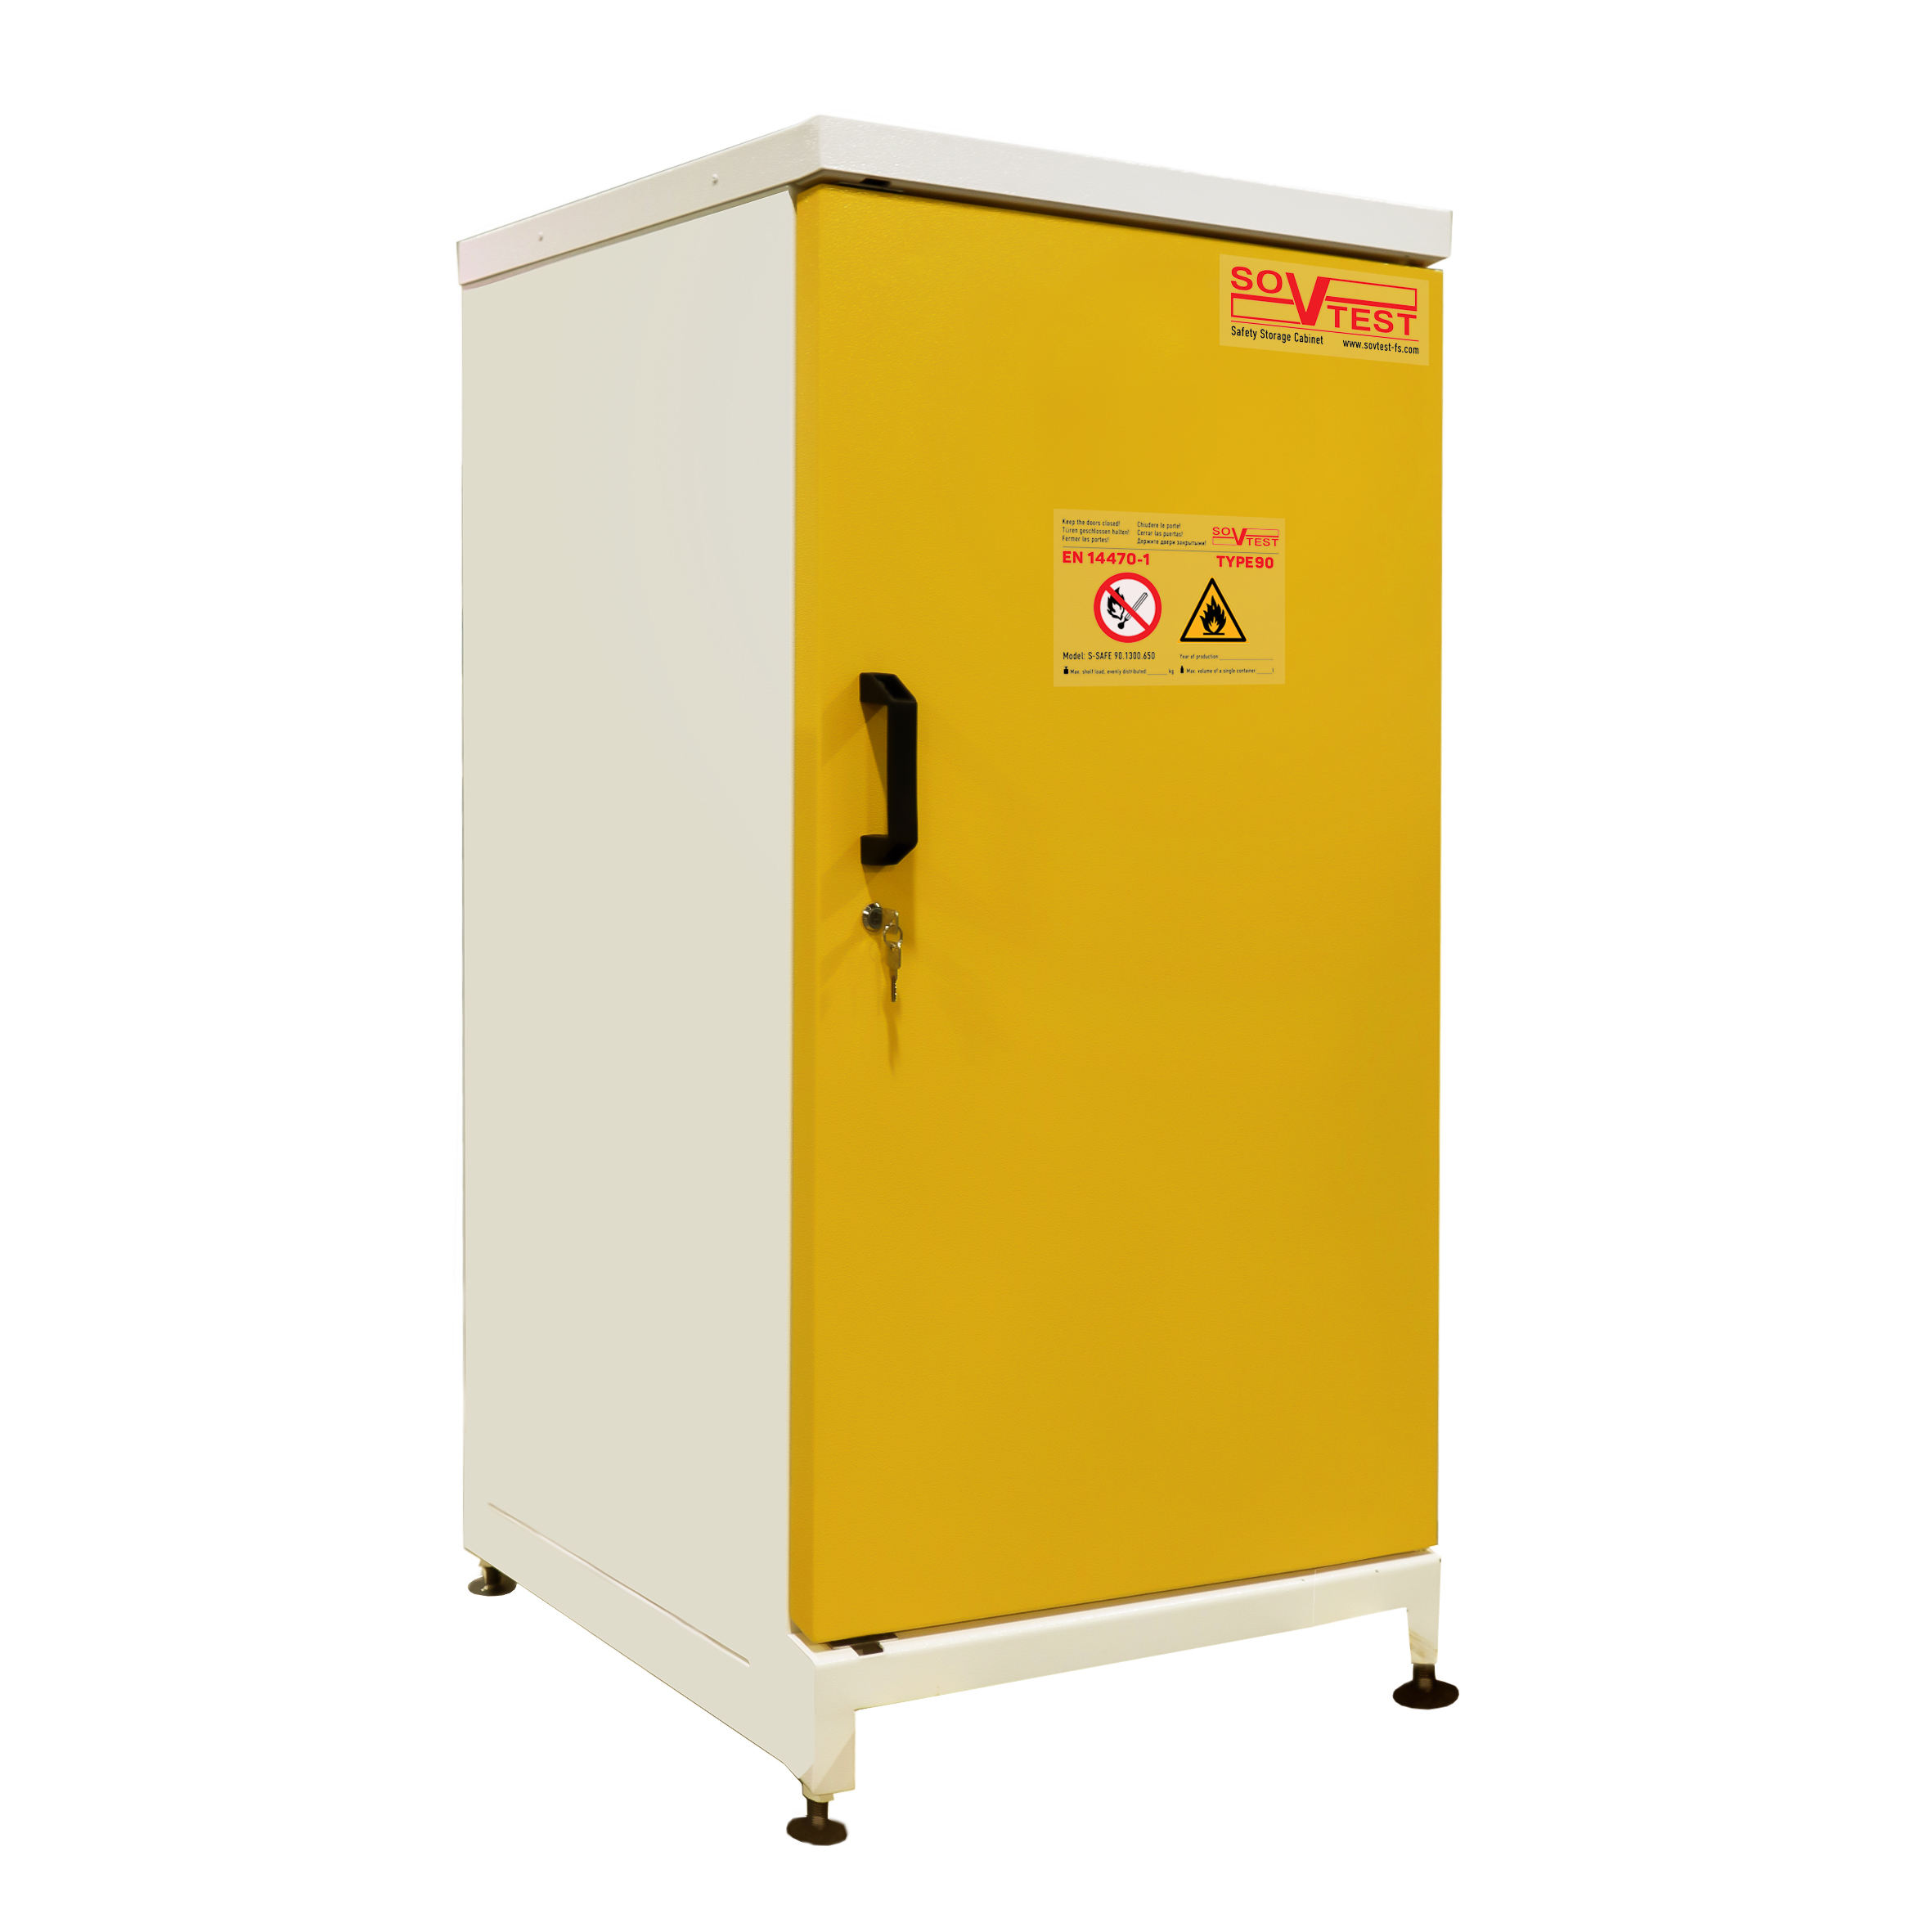 S-SAFE 90.1300.650 SAFETY STORAGE CABINET FOR FLAMMABLE LIQUIDS EN 14470-1